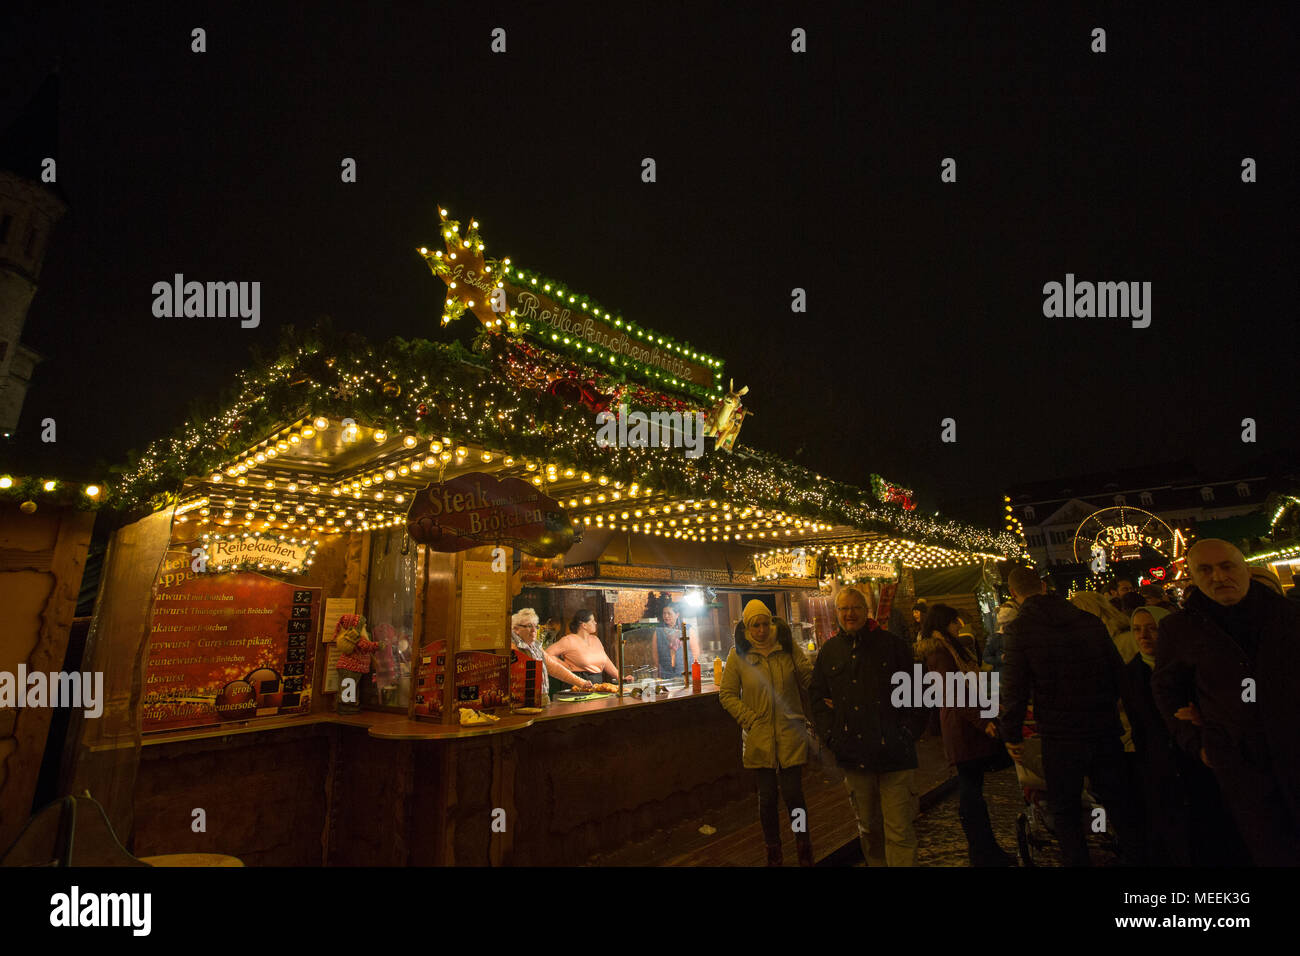 Traditional Christmas Market or Weihnachtsmarkt at Bonn, North Rhine Westphalia, Germany. Stock Photo